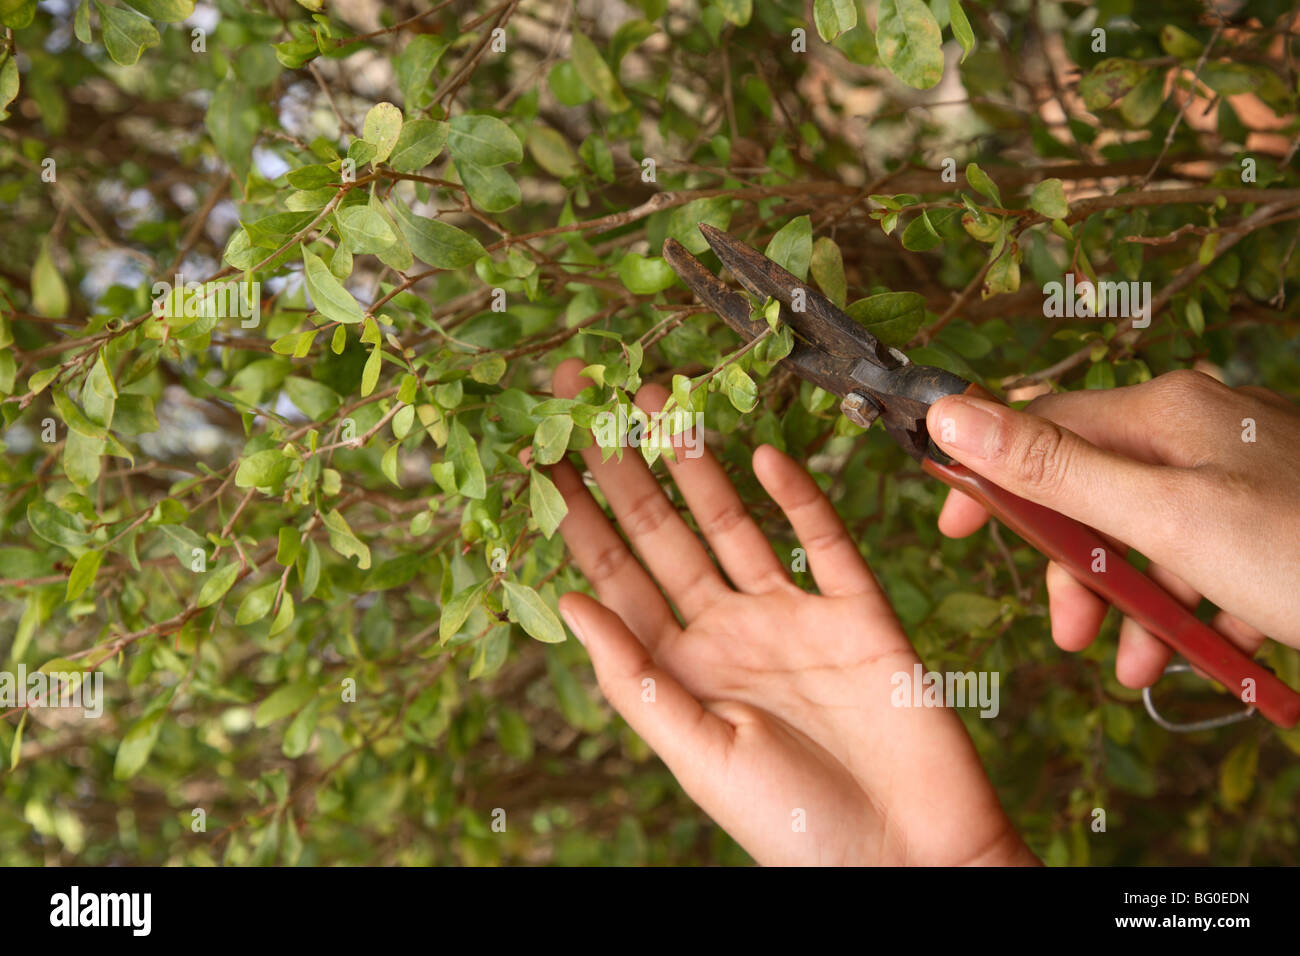 Henna Plant Stock Photos Henna Plant Stock Images Alamy